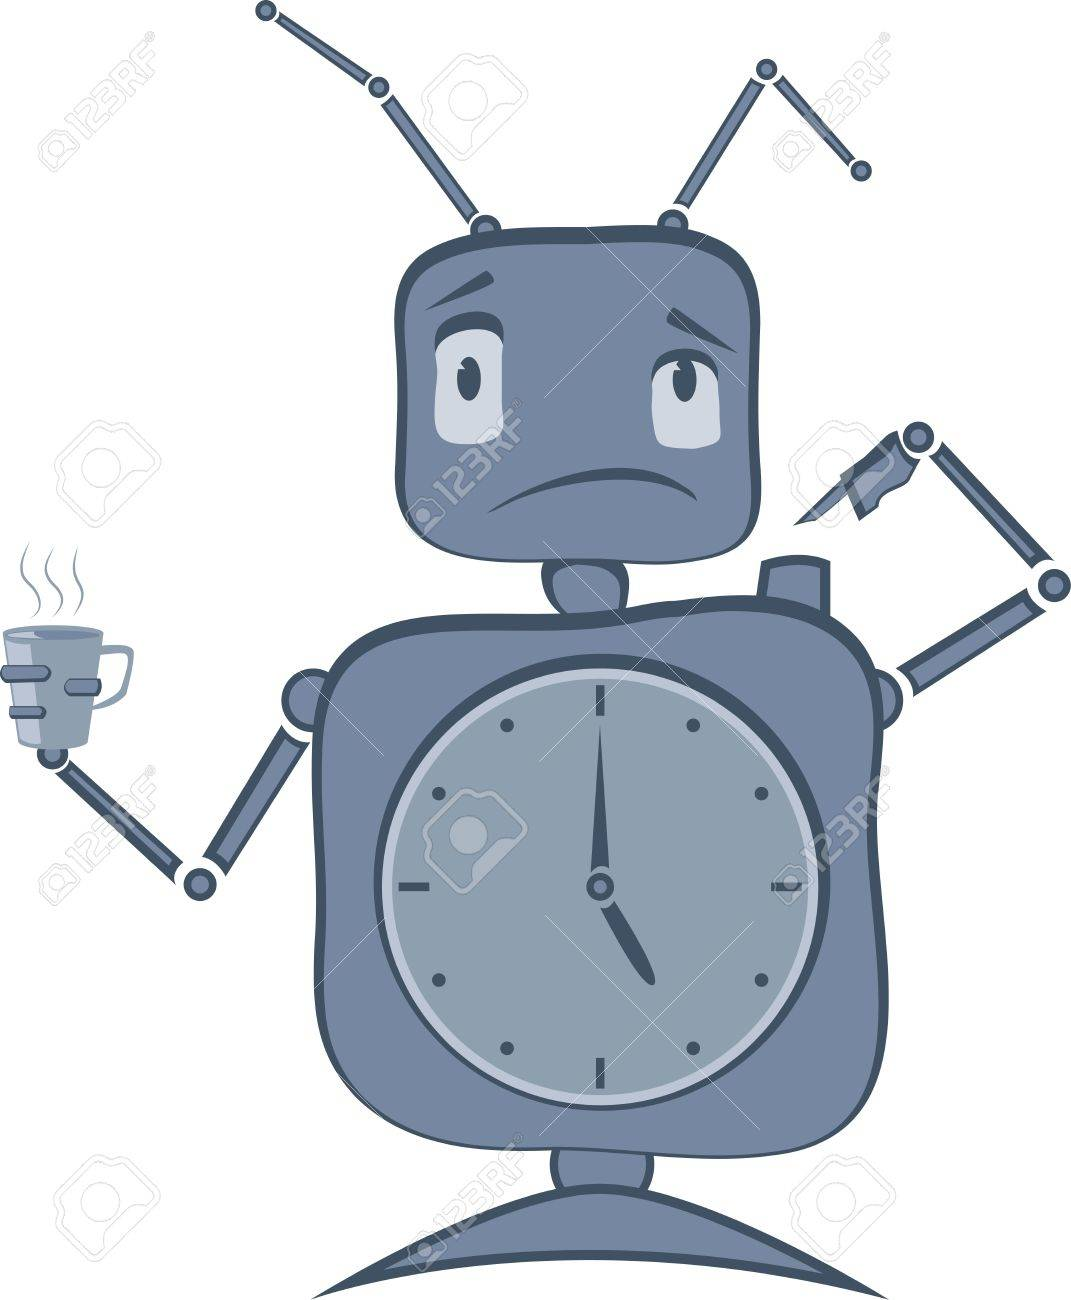 Robot with Clocks and Antenas Stock Vector - 14828090